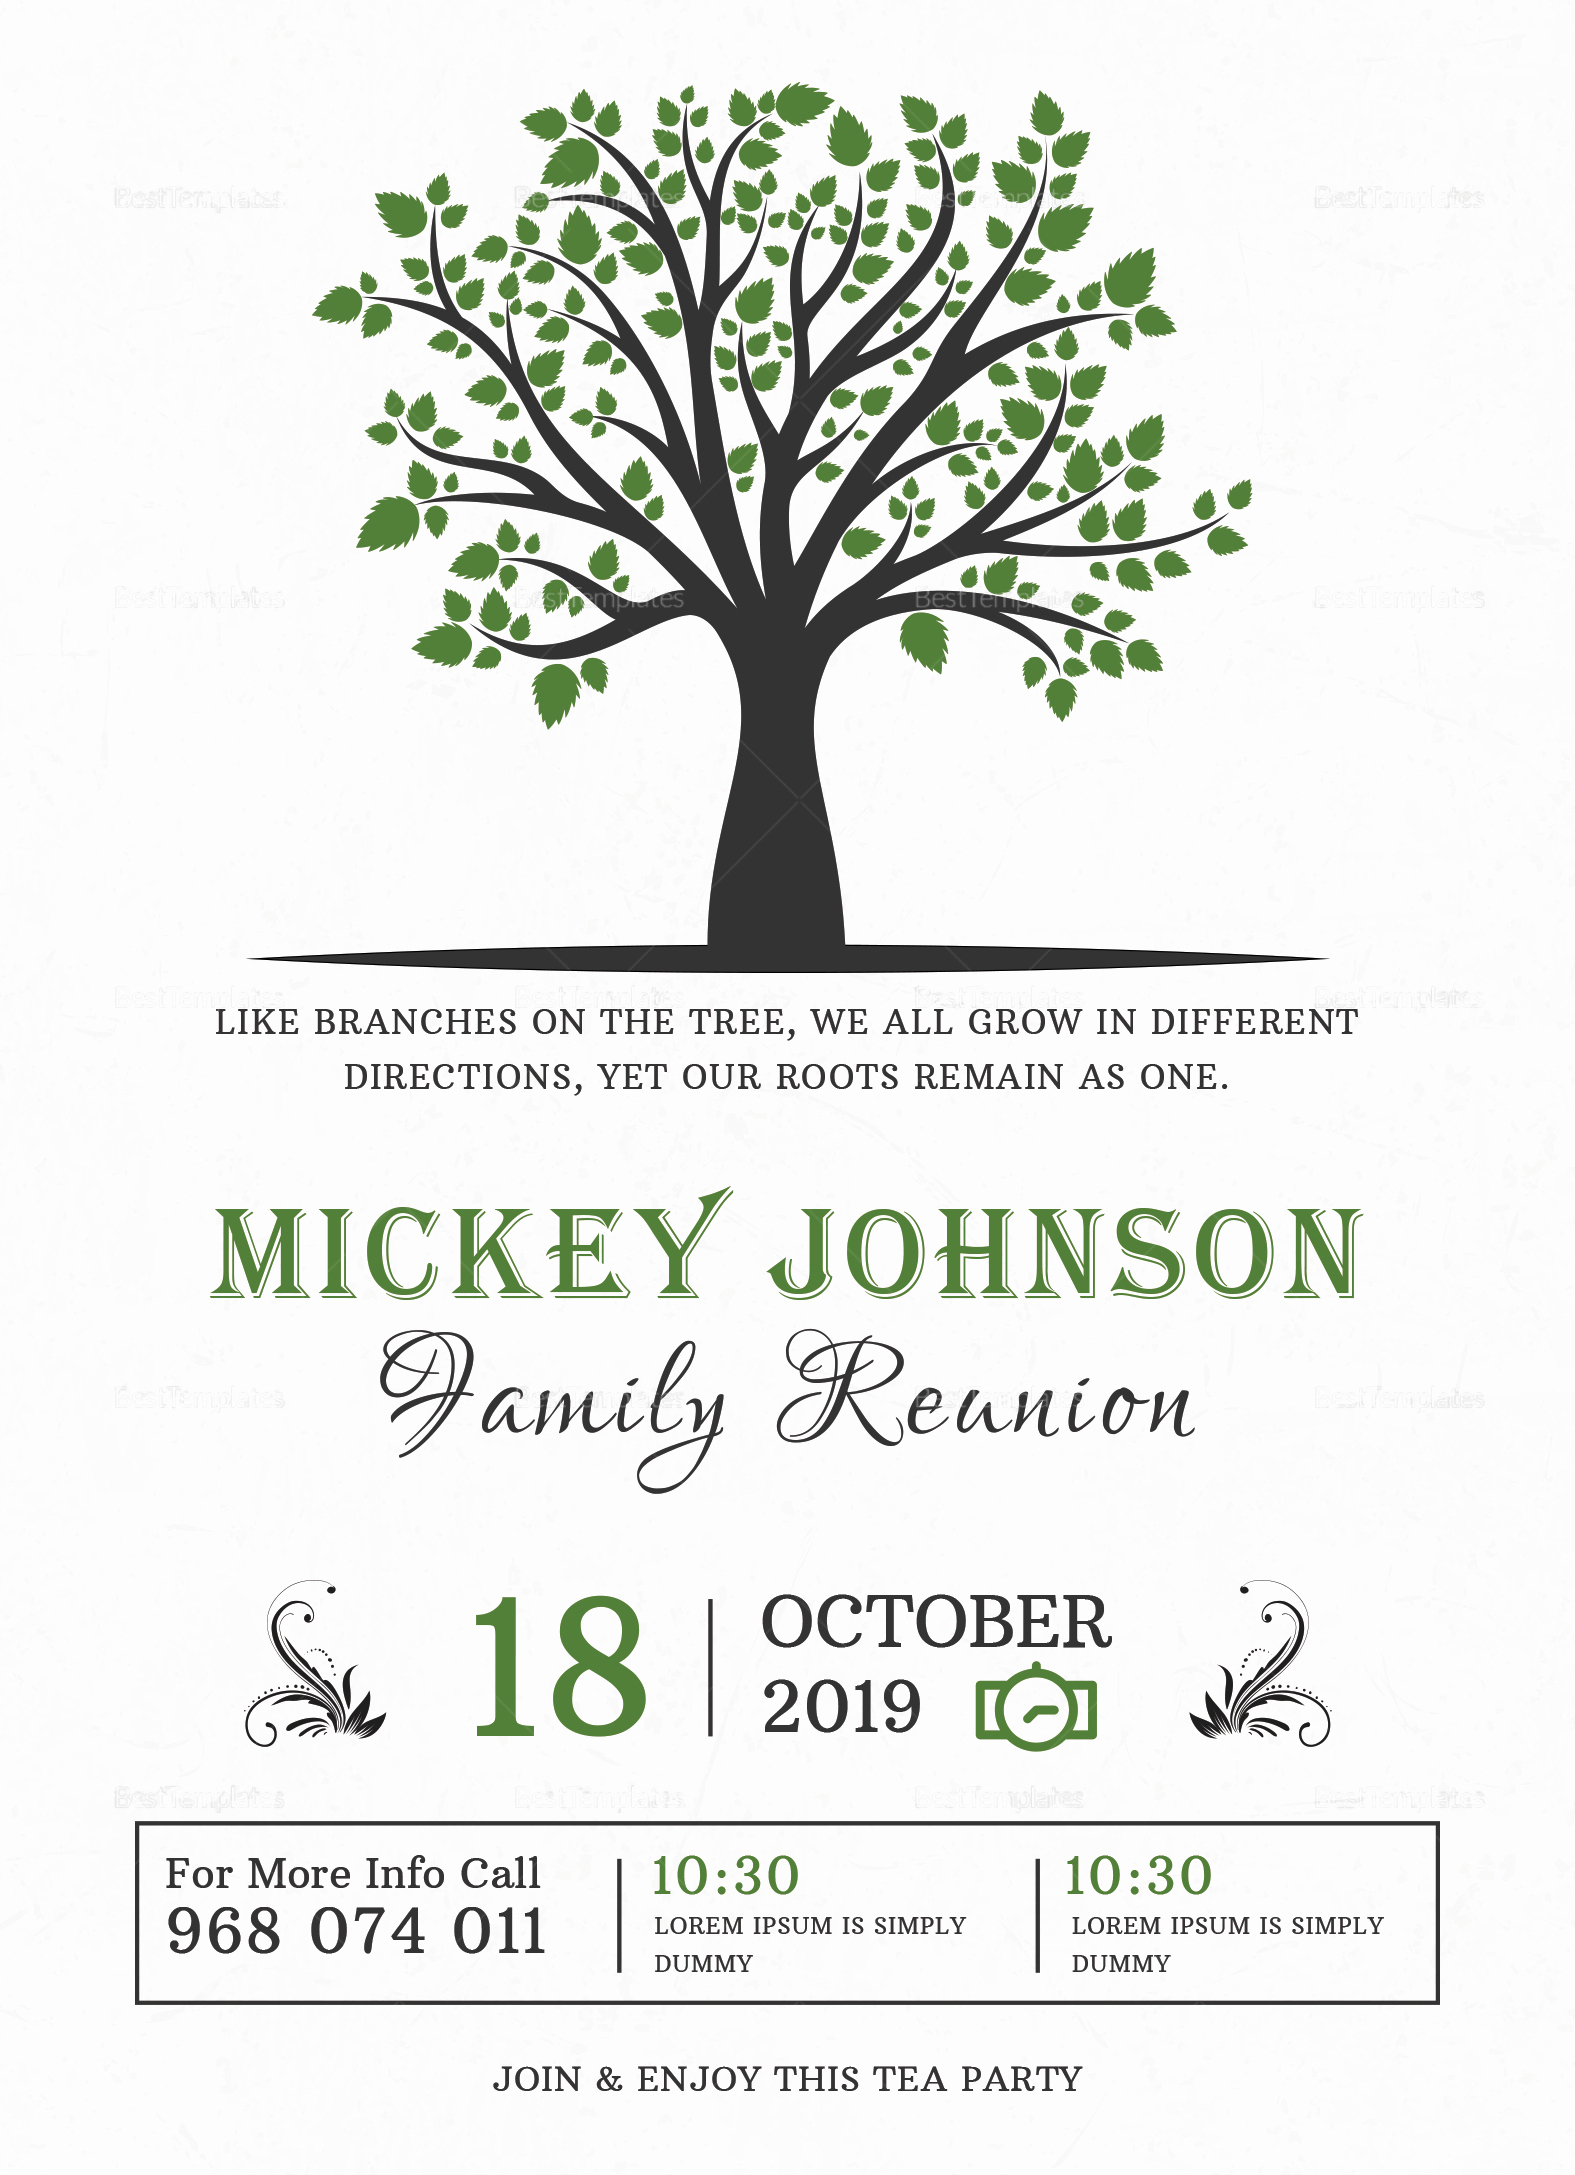 Free Family Reunion Invitation Templates Inspirational Classic Family Reunion Invitation Design Template In Word